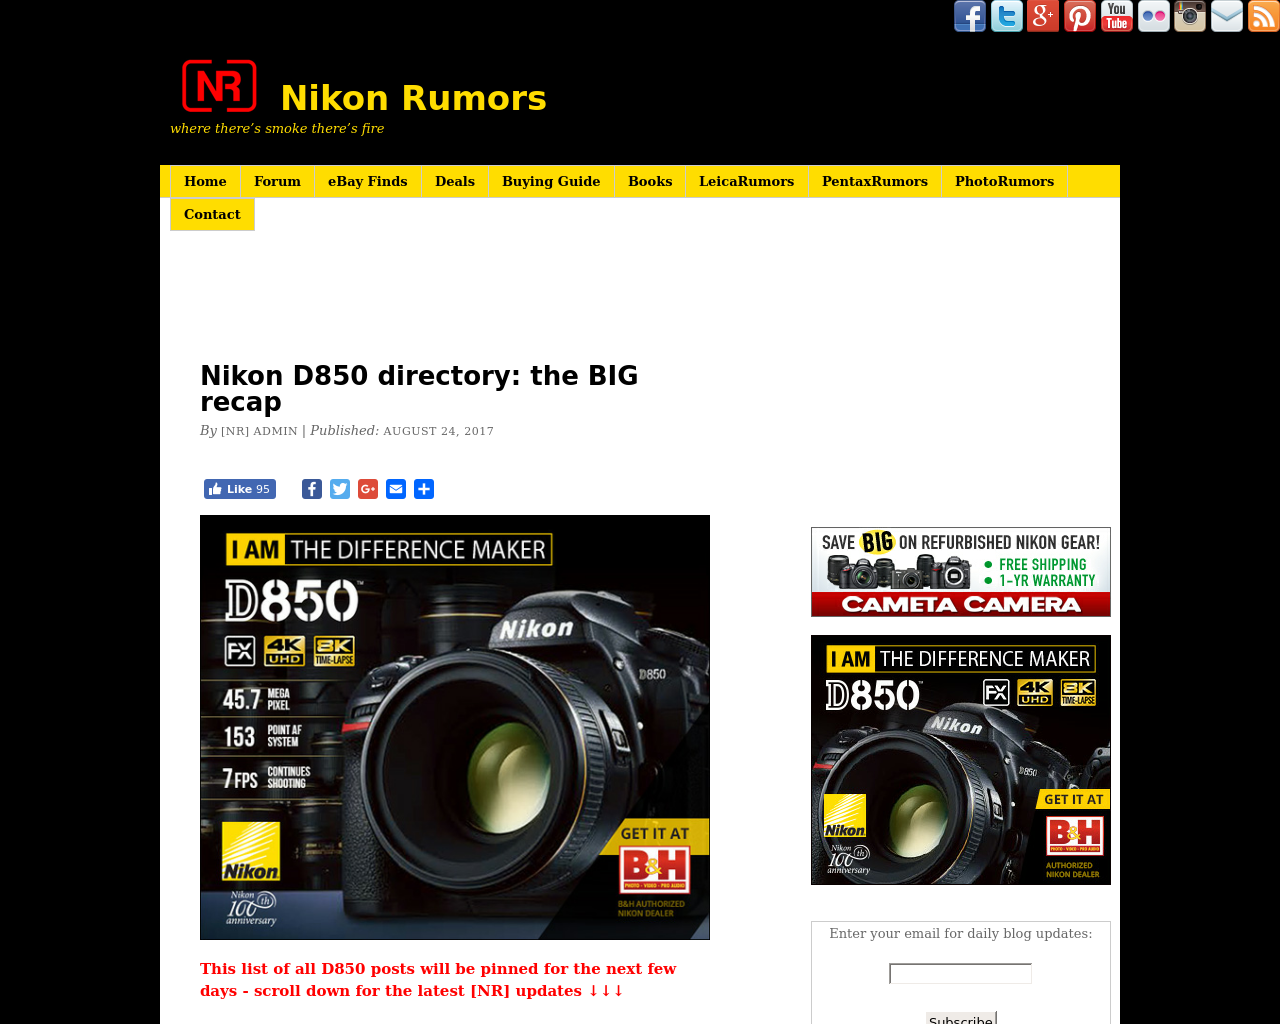 Nikon-Rumors-Advertising-Reviews-Pricing